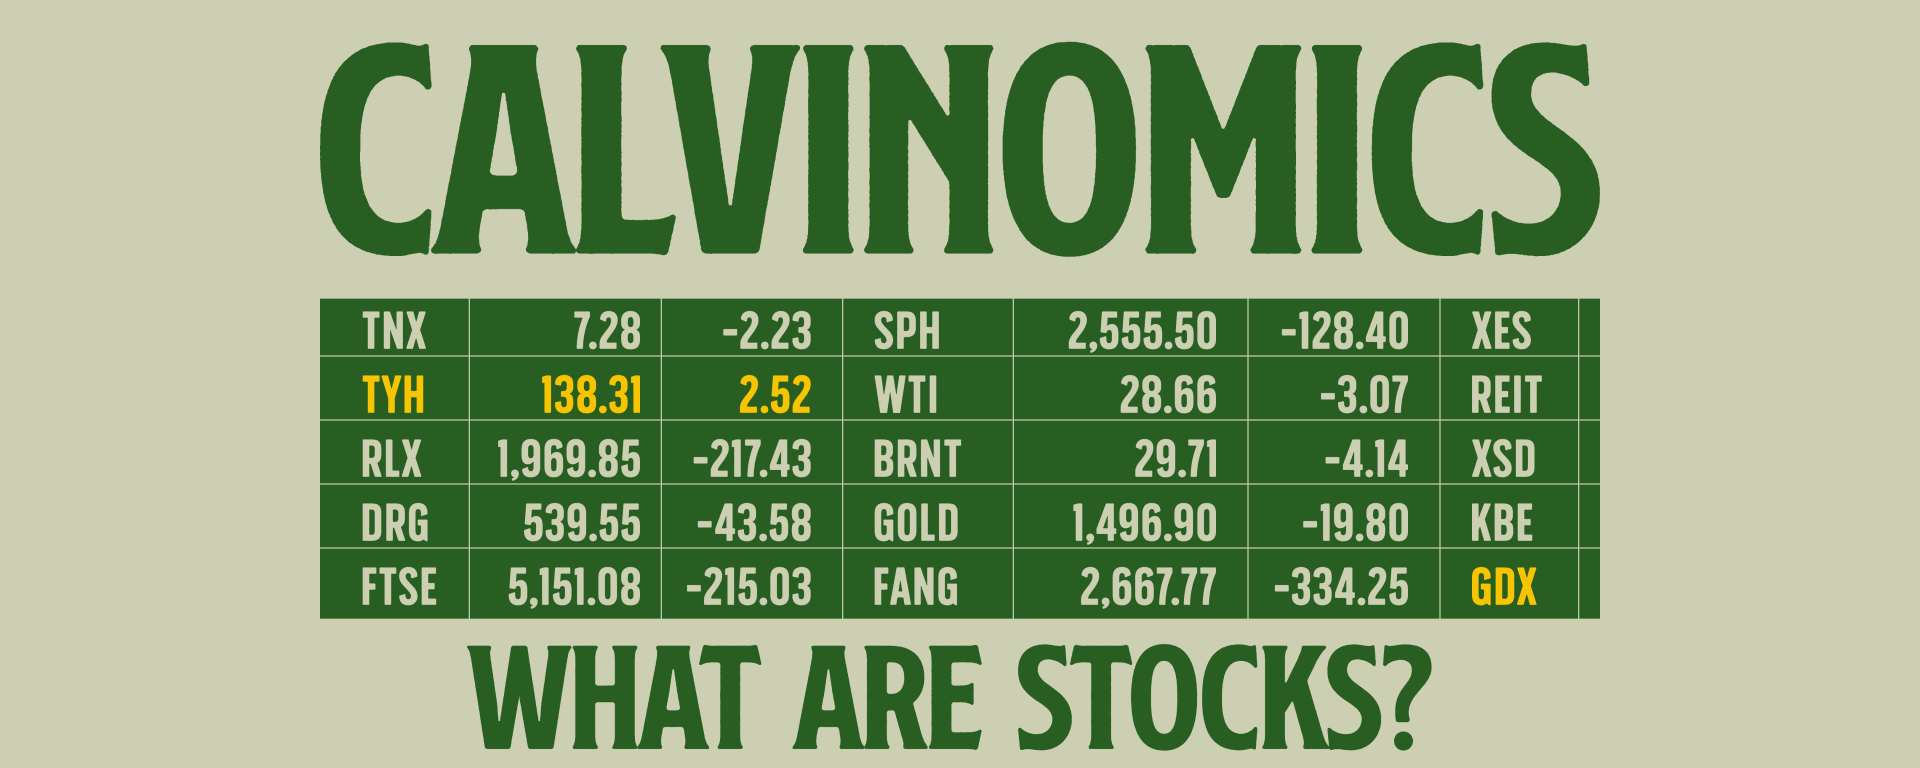 green text on light green background saying Calvinomics what are stocks? with green and yellow stock grid.